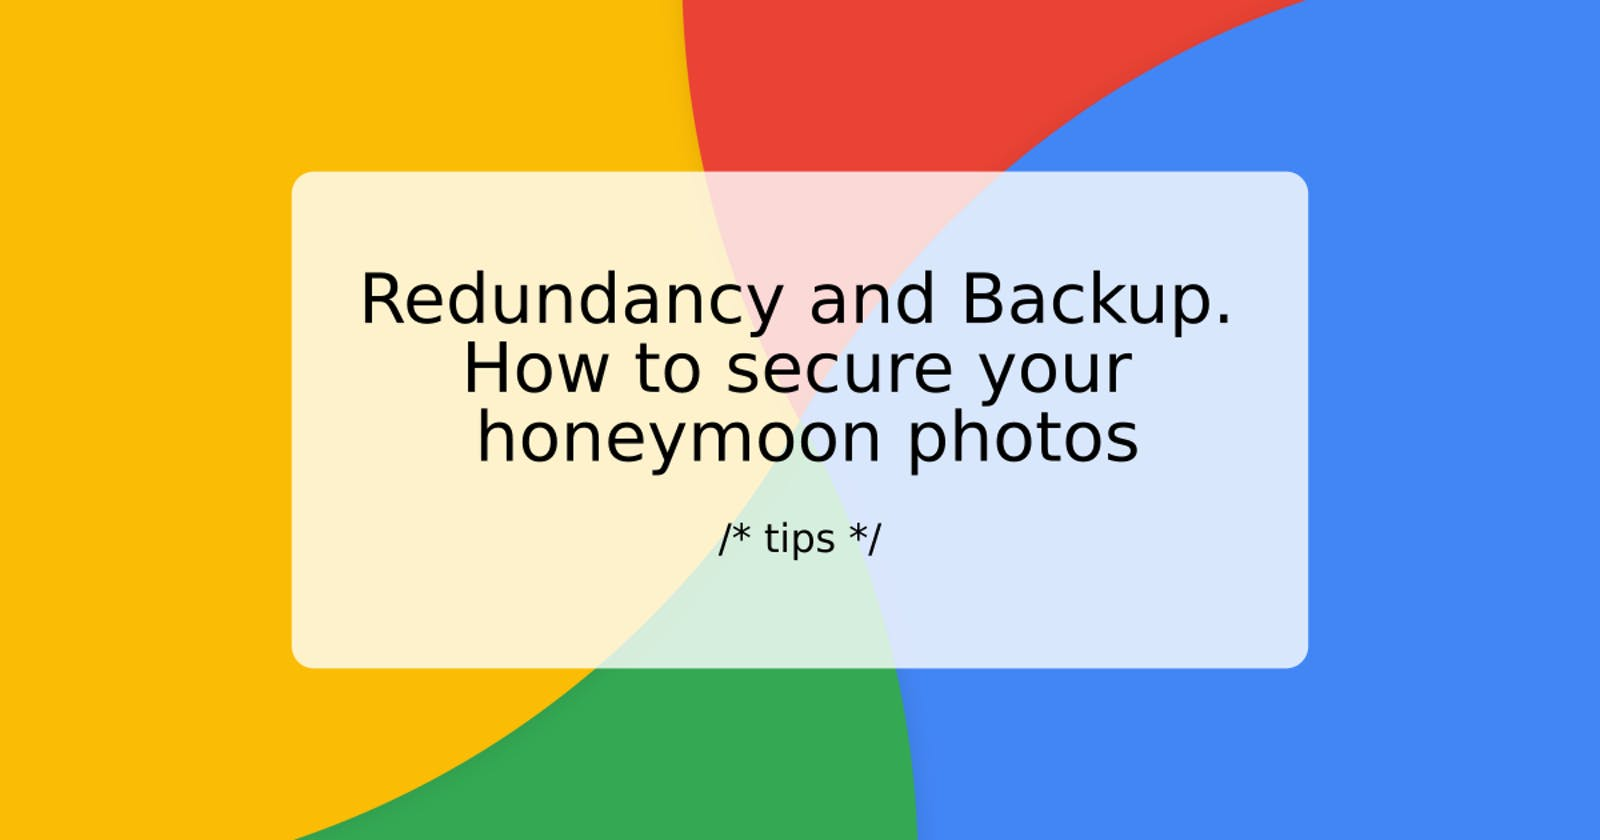 Redundancy and Backup. How to secure your honeymoon photos